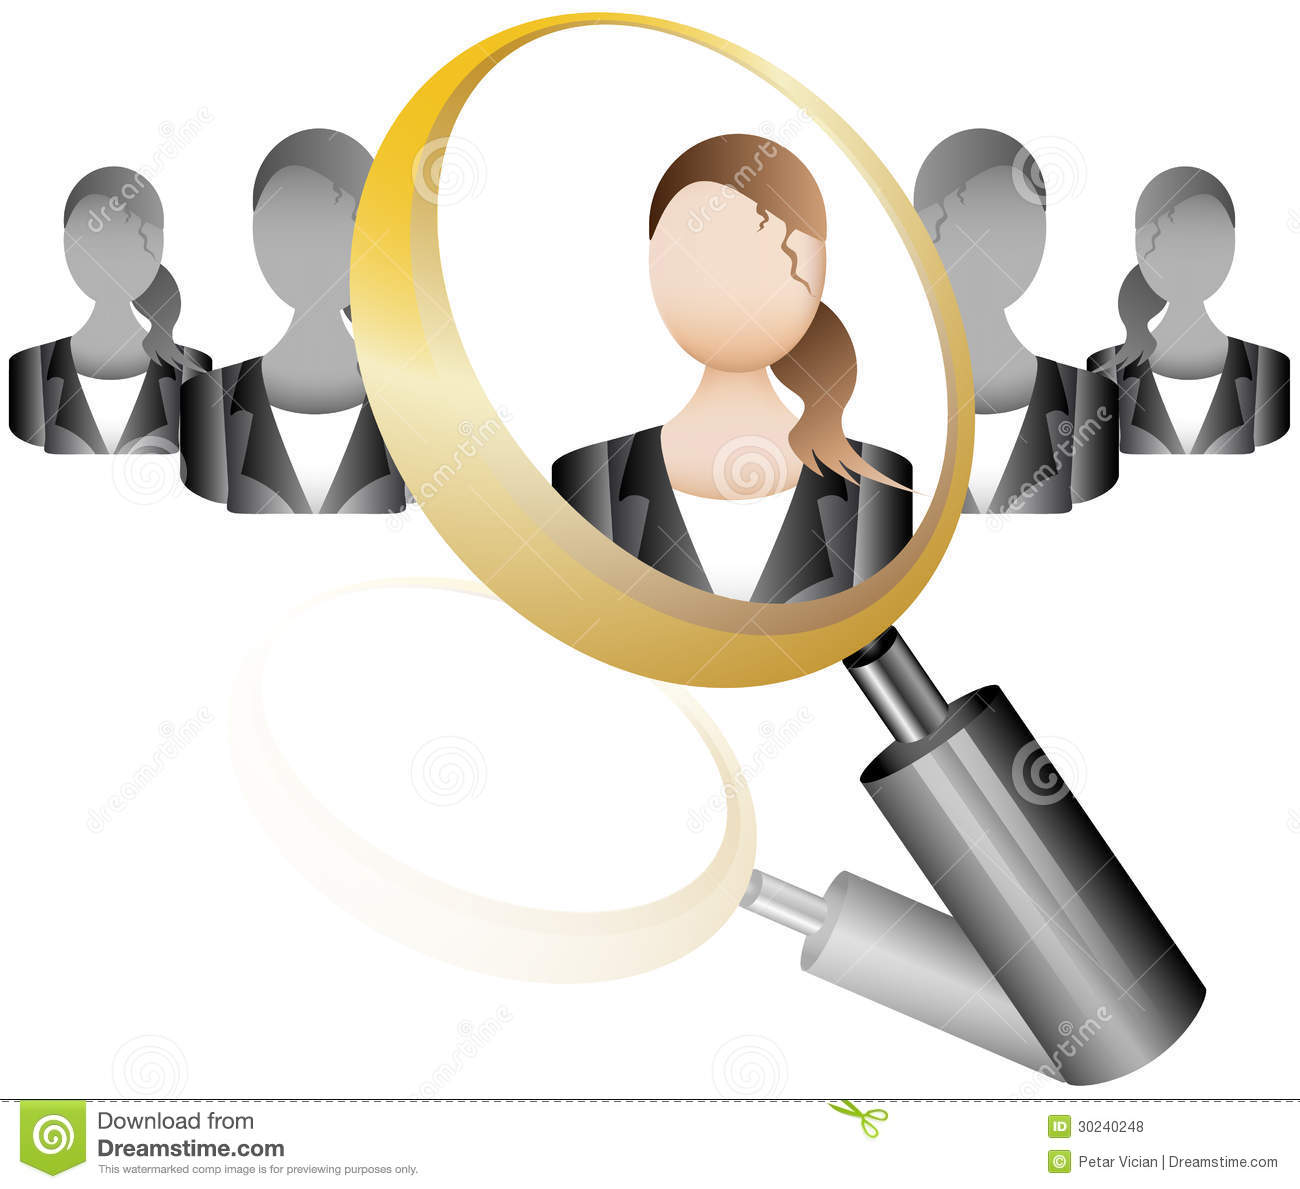 employee recruitment human resource selection interview search employee icon for recruitment agency magnif royalty stock photos